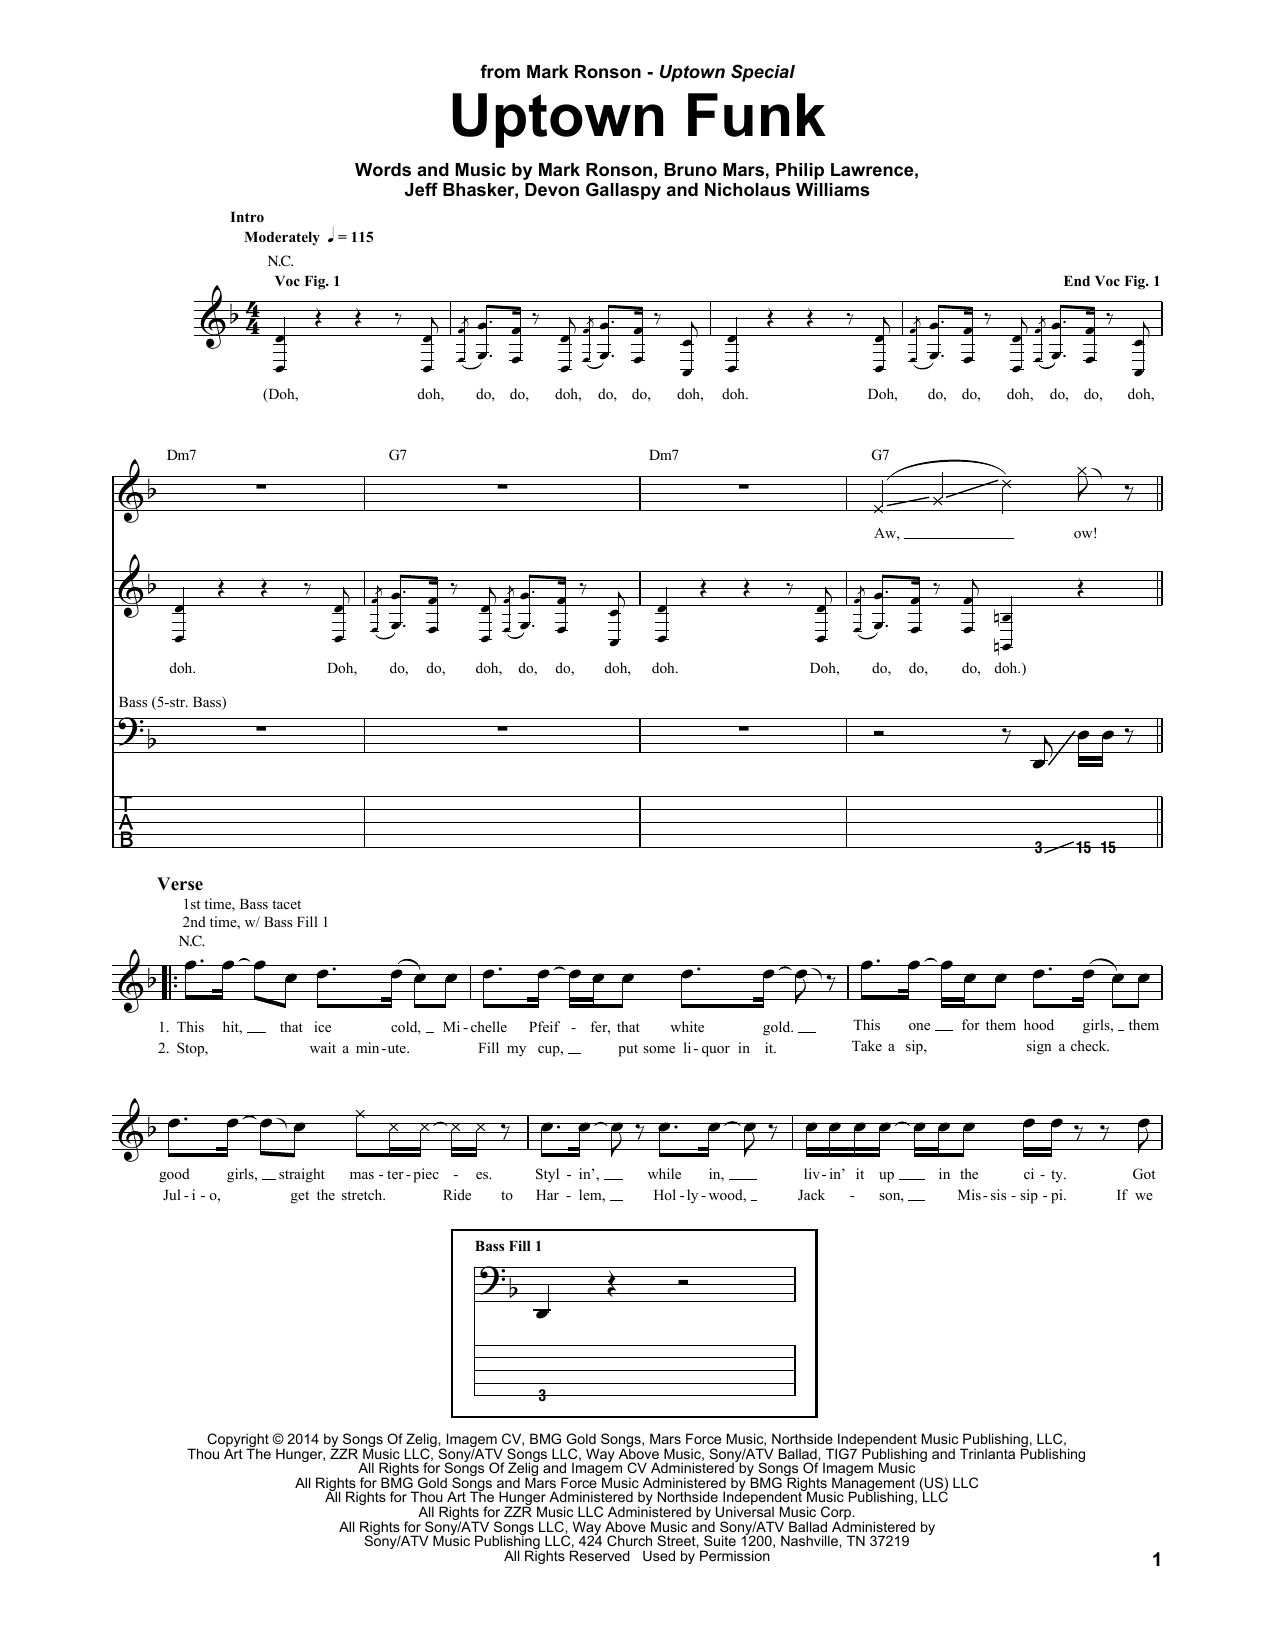 Uptown Funk : Sheet Music Direct